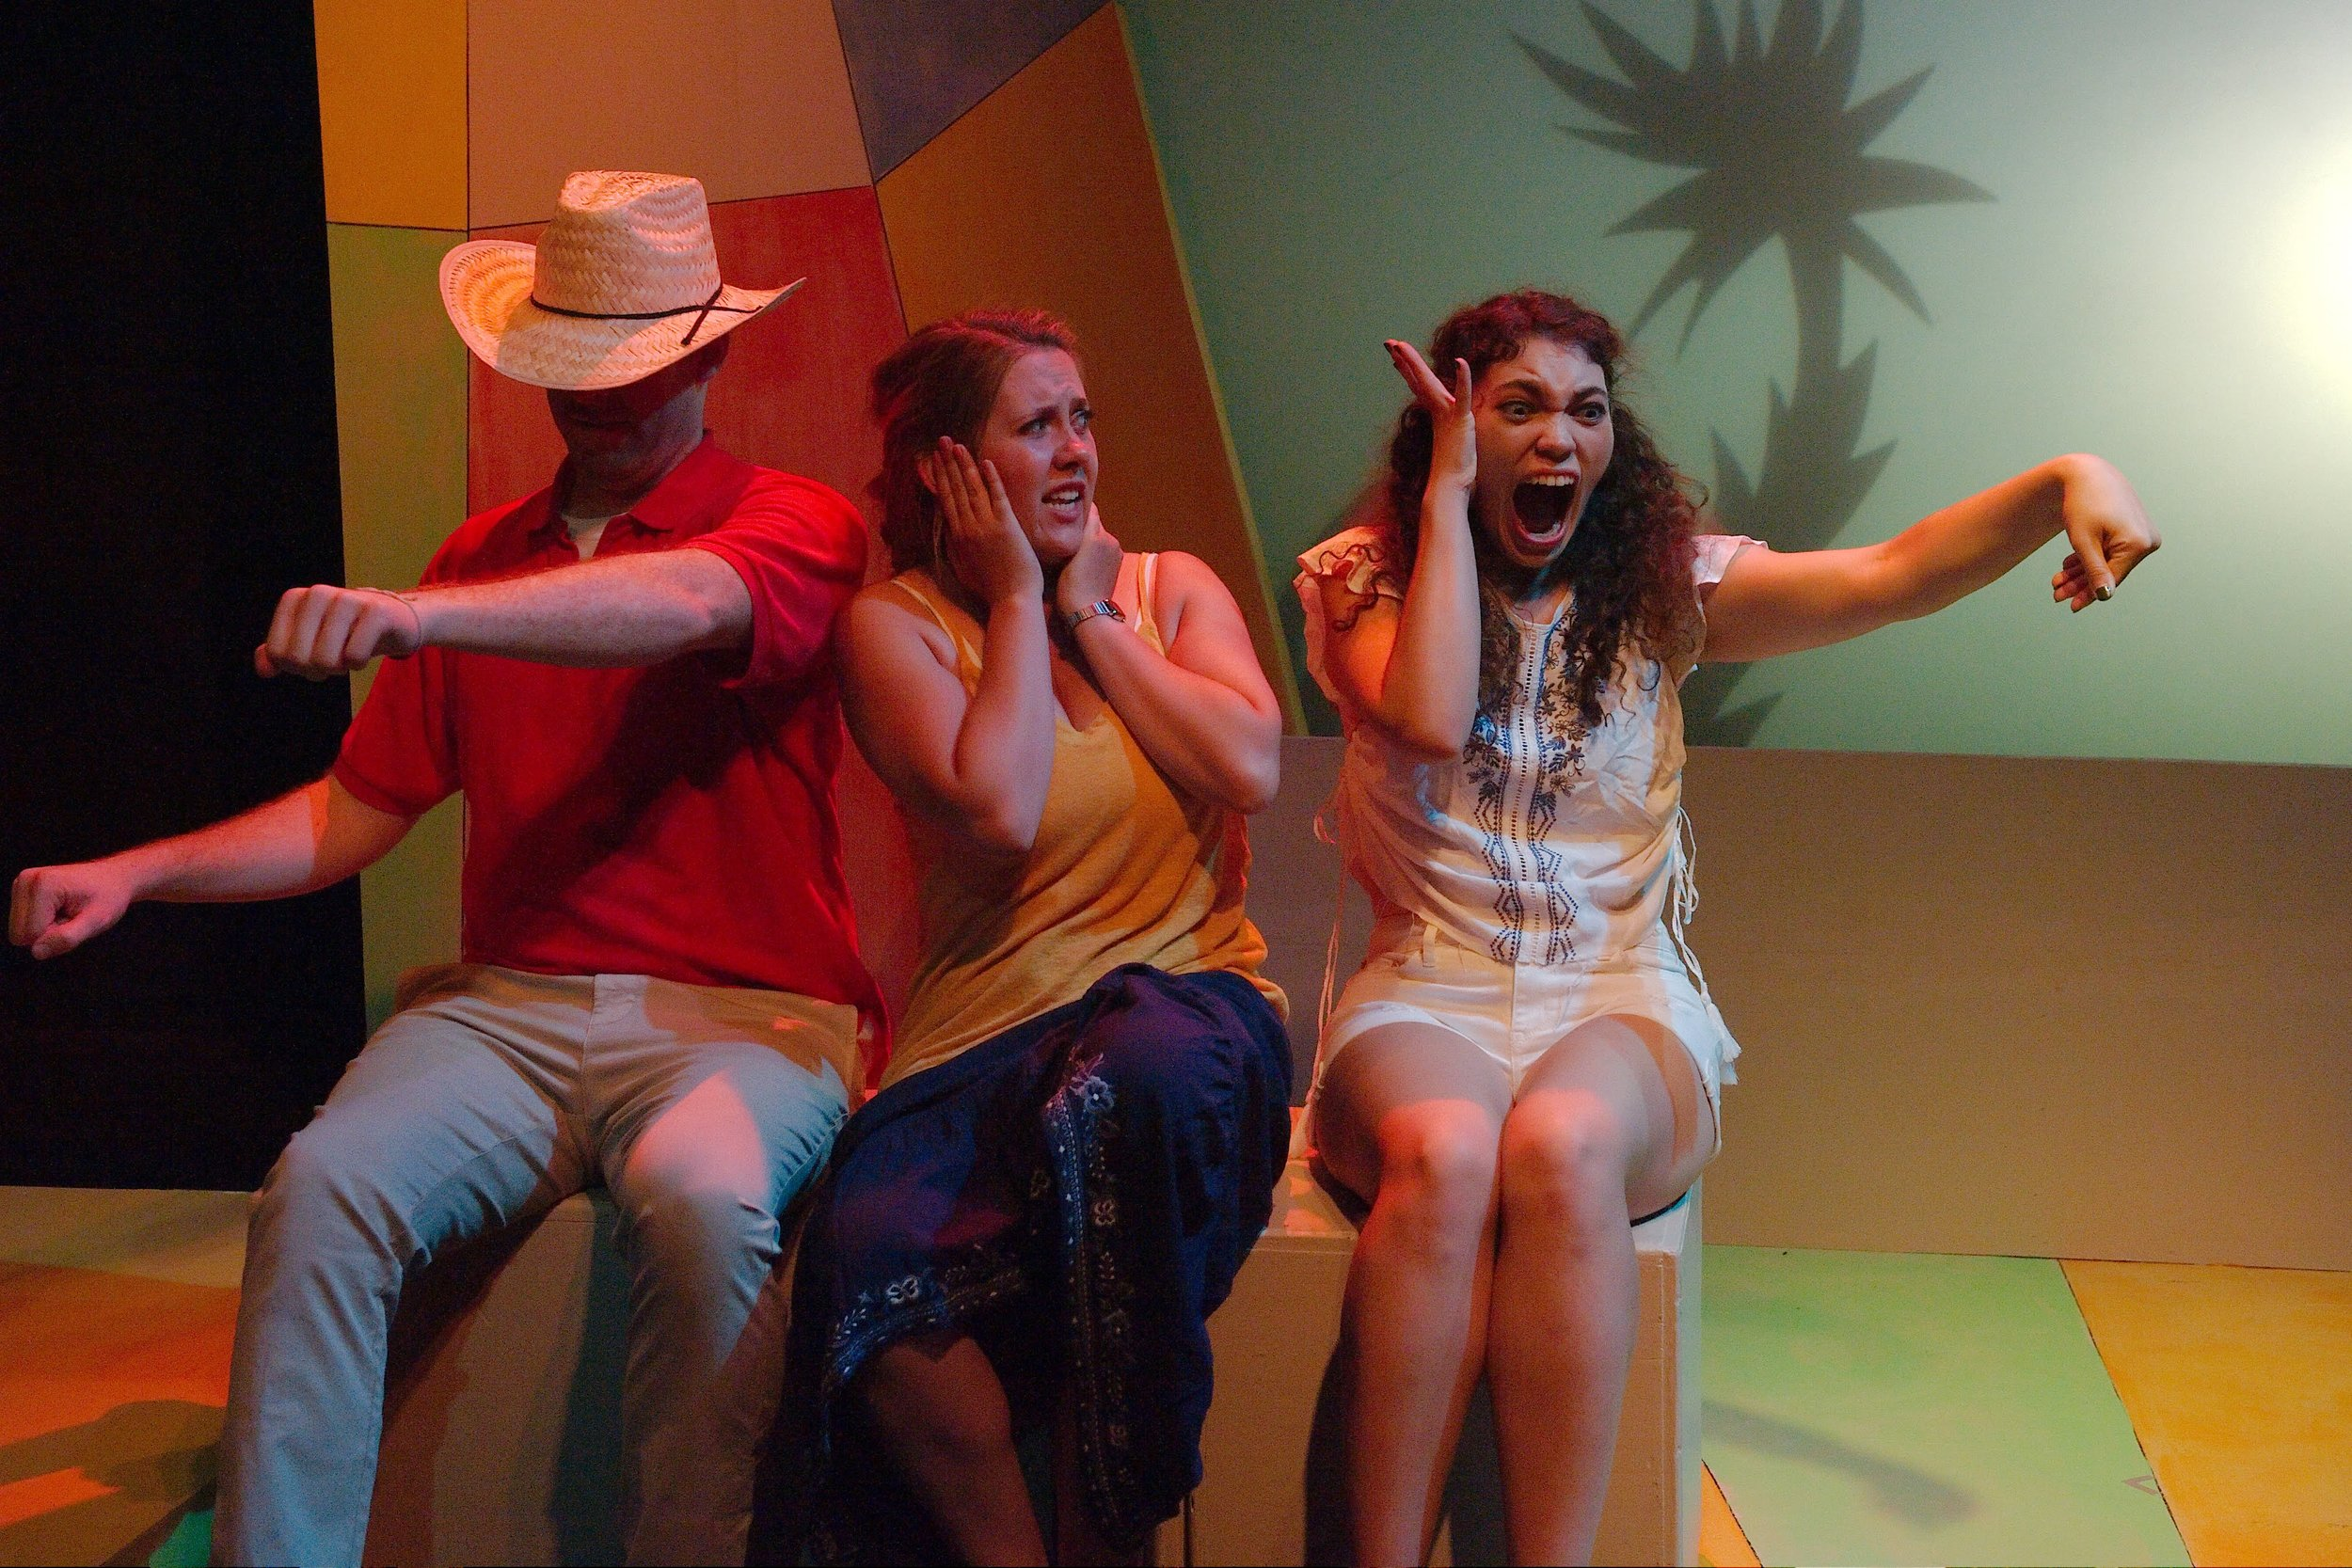 (L to R)Martin Diaz-Valdes;Steph Vondell as Maria;Allyce Carryn Torres as Lola. Photo by Anthony Aicardi.